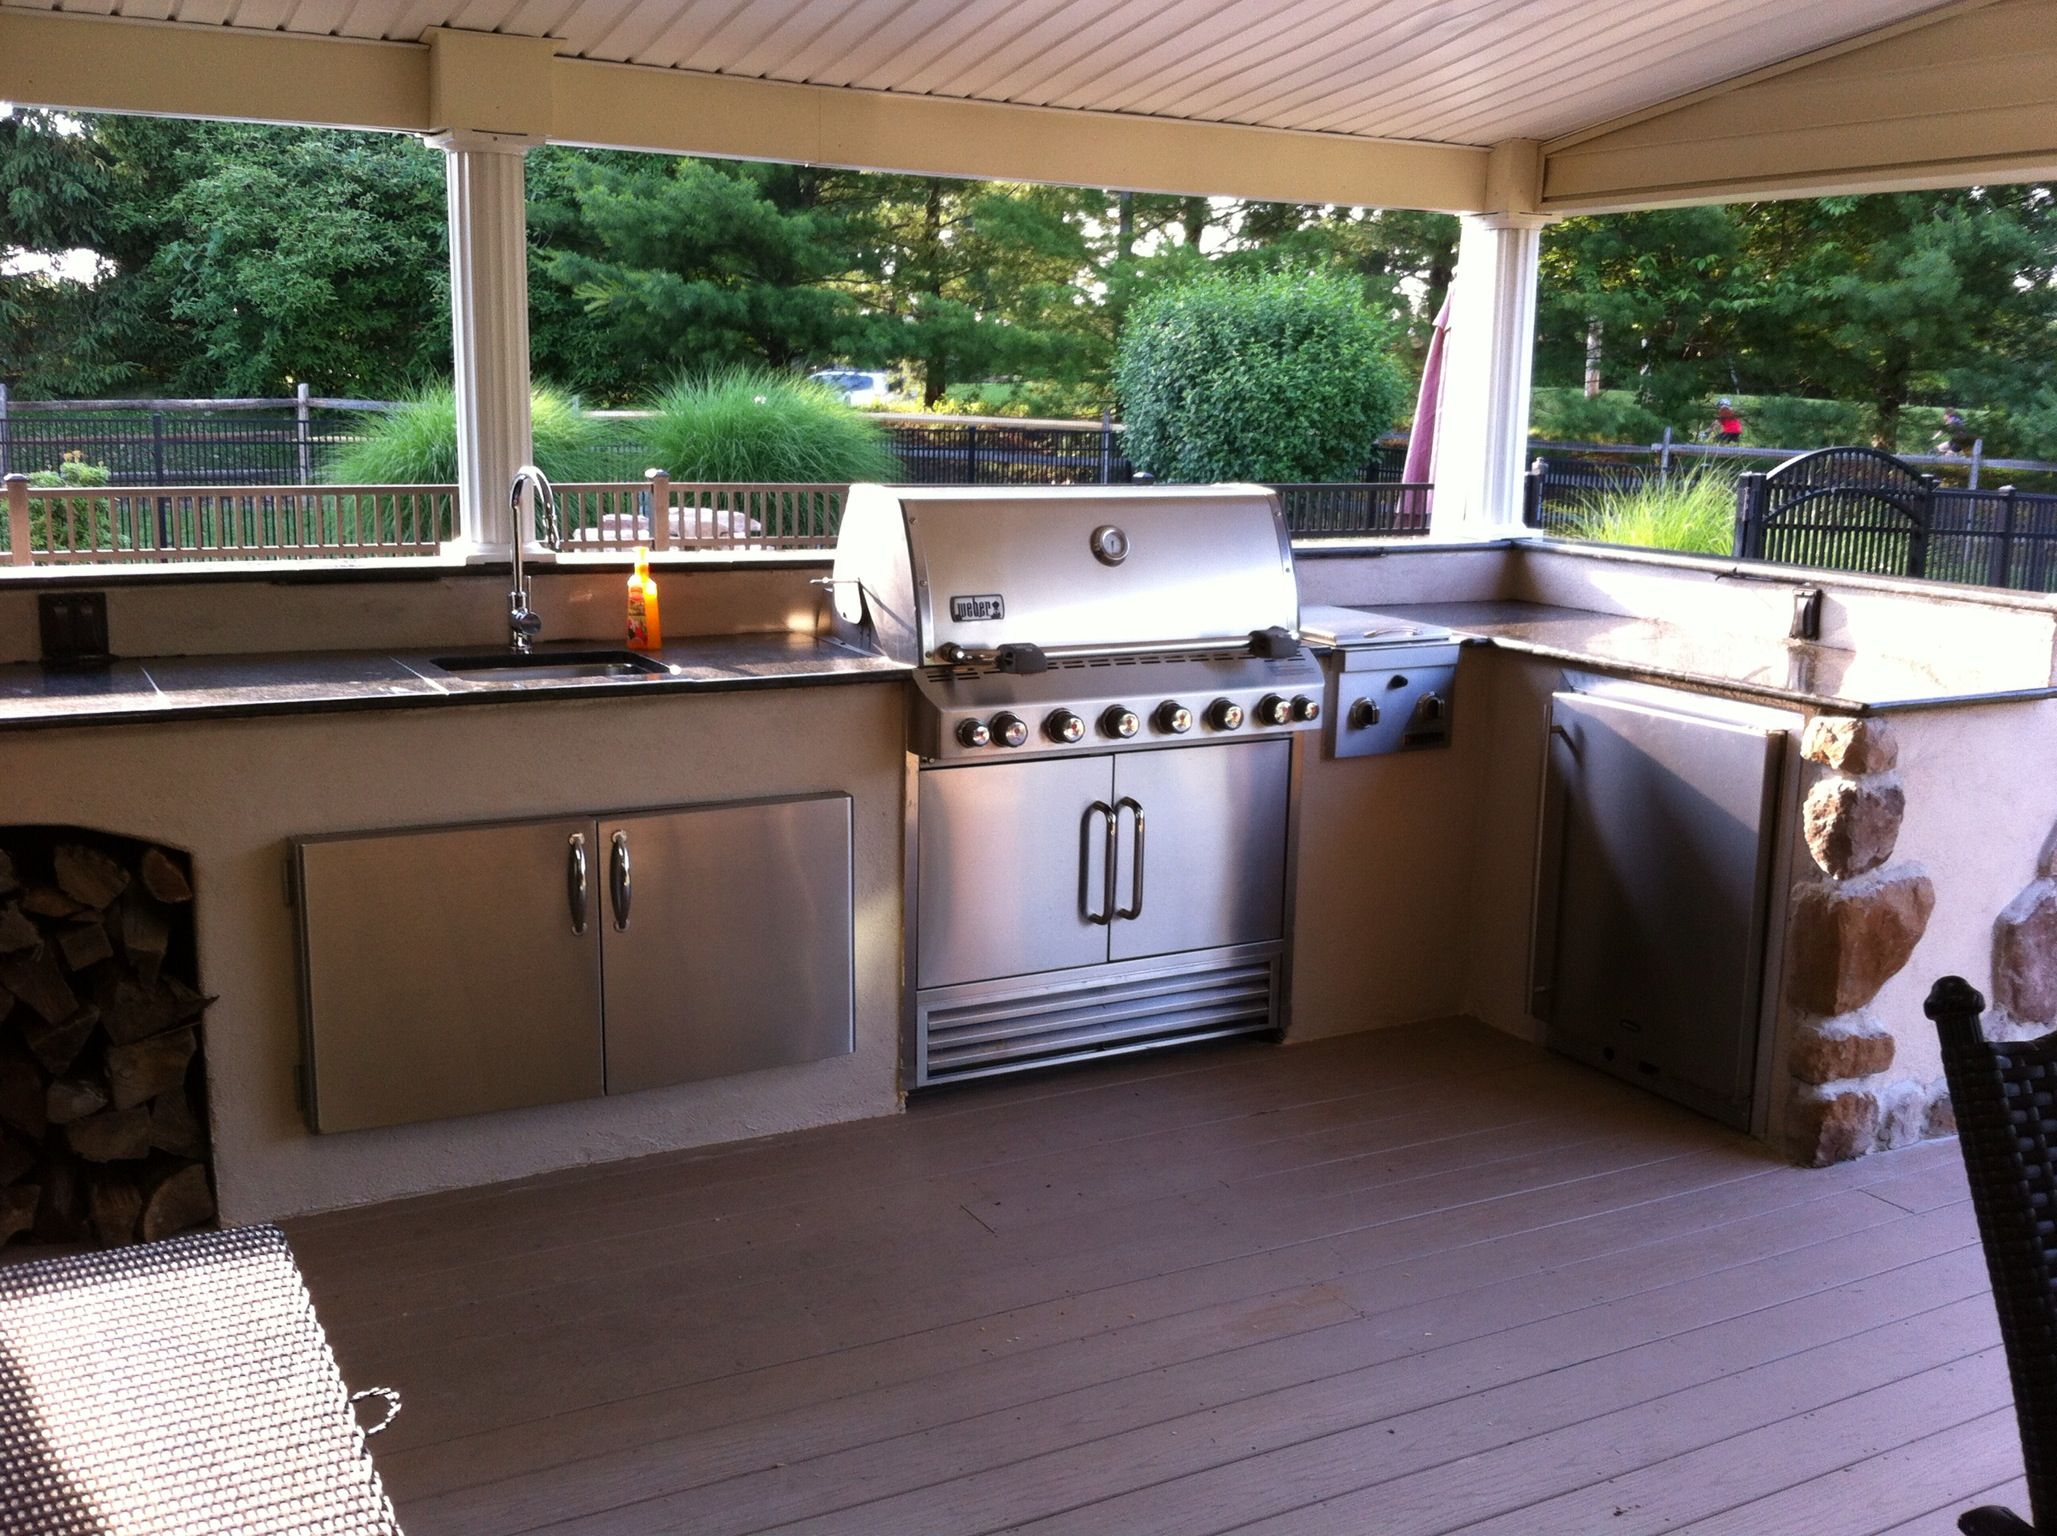 Craigslist kalamazoo kitchen cabinets - Our Outdoor Kitchen On A Budget Bought Everything Off Craigslist Over A Year And A